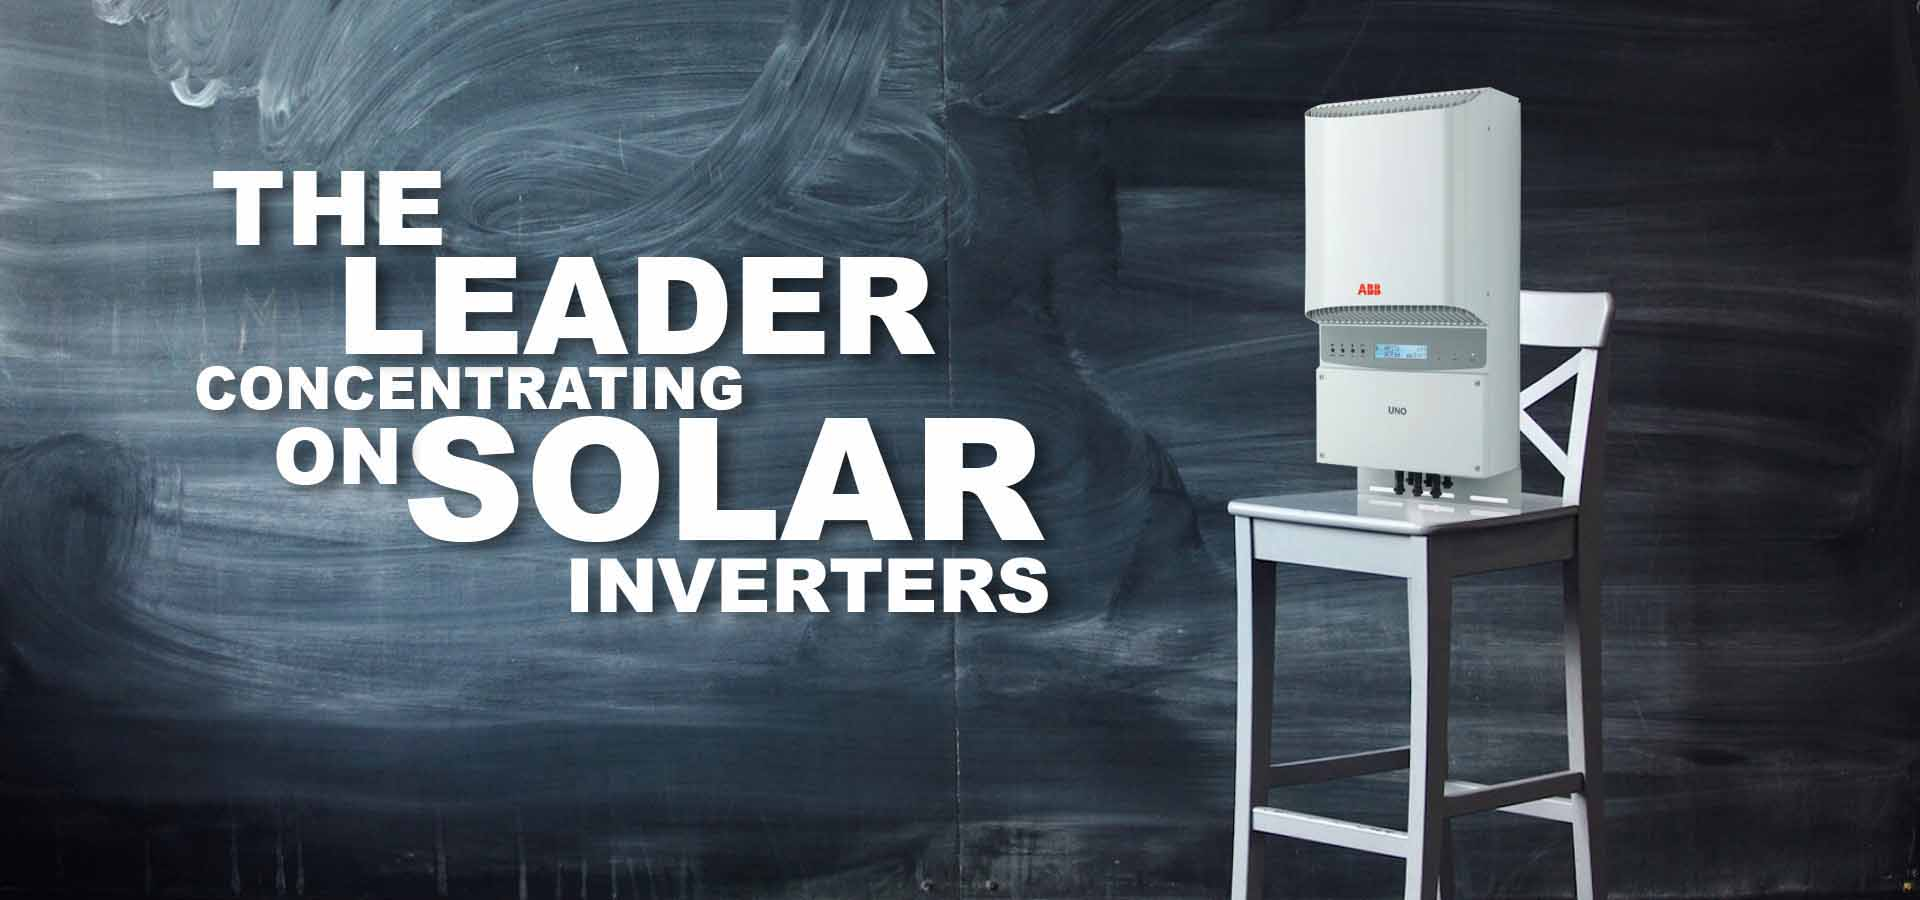 abb leader all the time concentrating on solar inverters